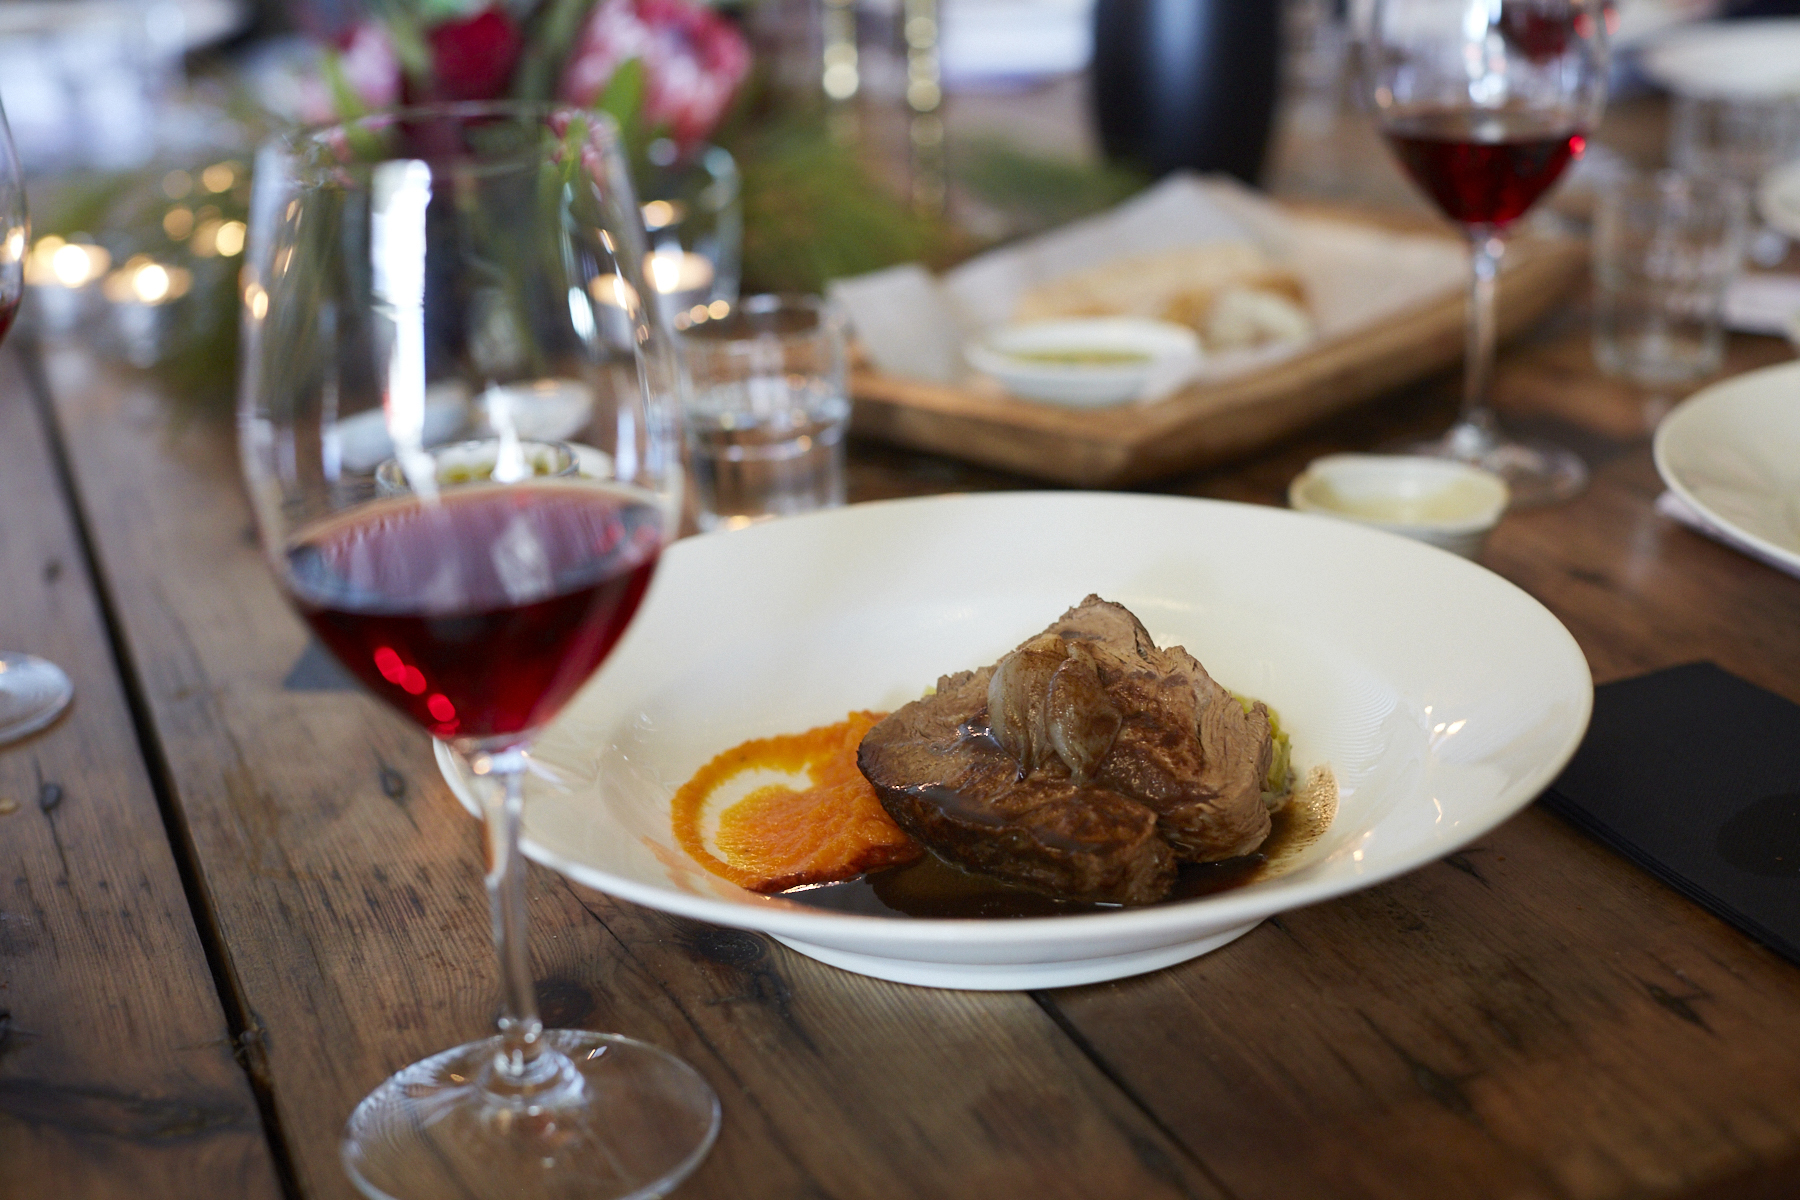 Pinot Noir and Roast blade of beef, delicious!